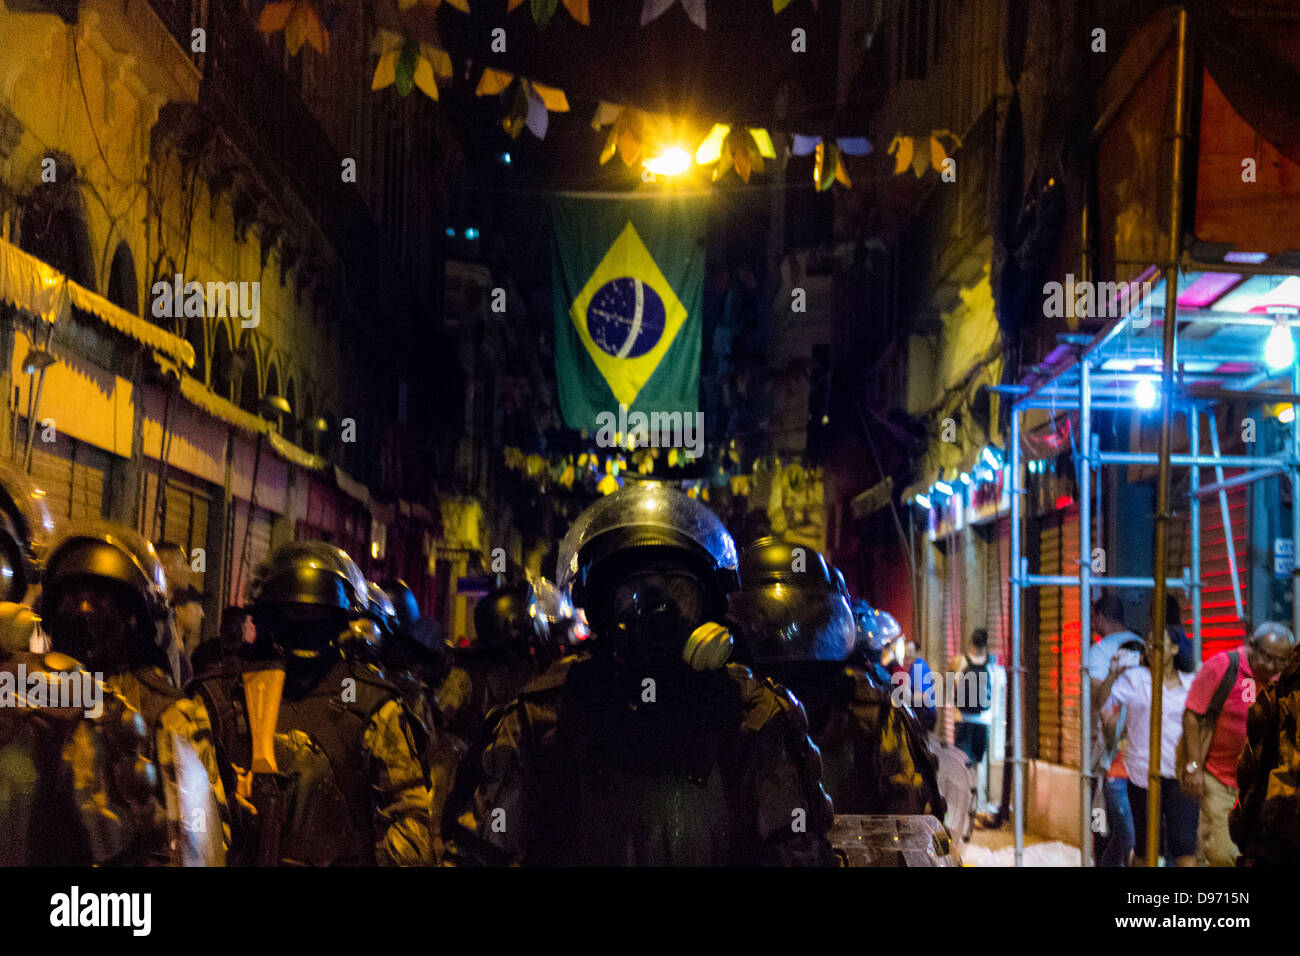 Army clash in the streets against protesters in public act against the increased bus fare in the city of Rio de - Stock Image